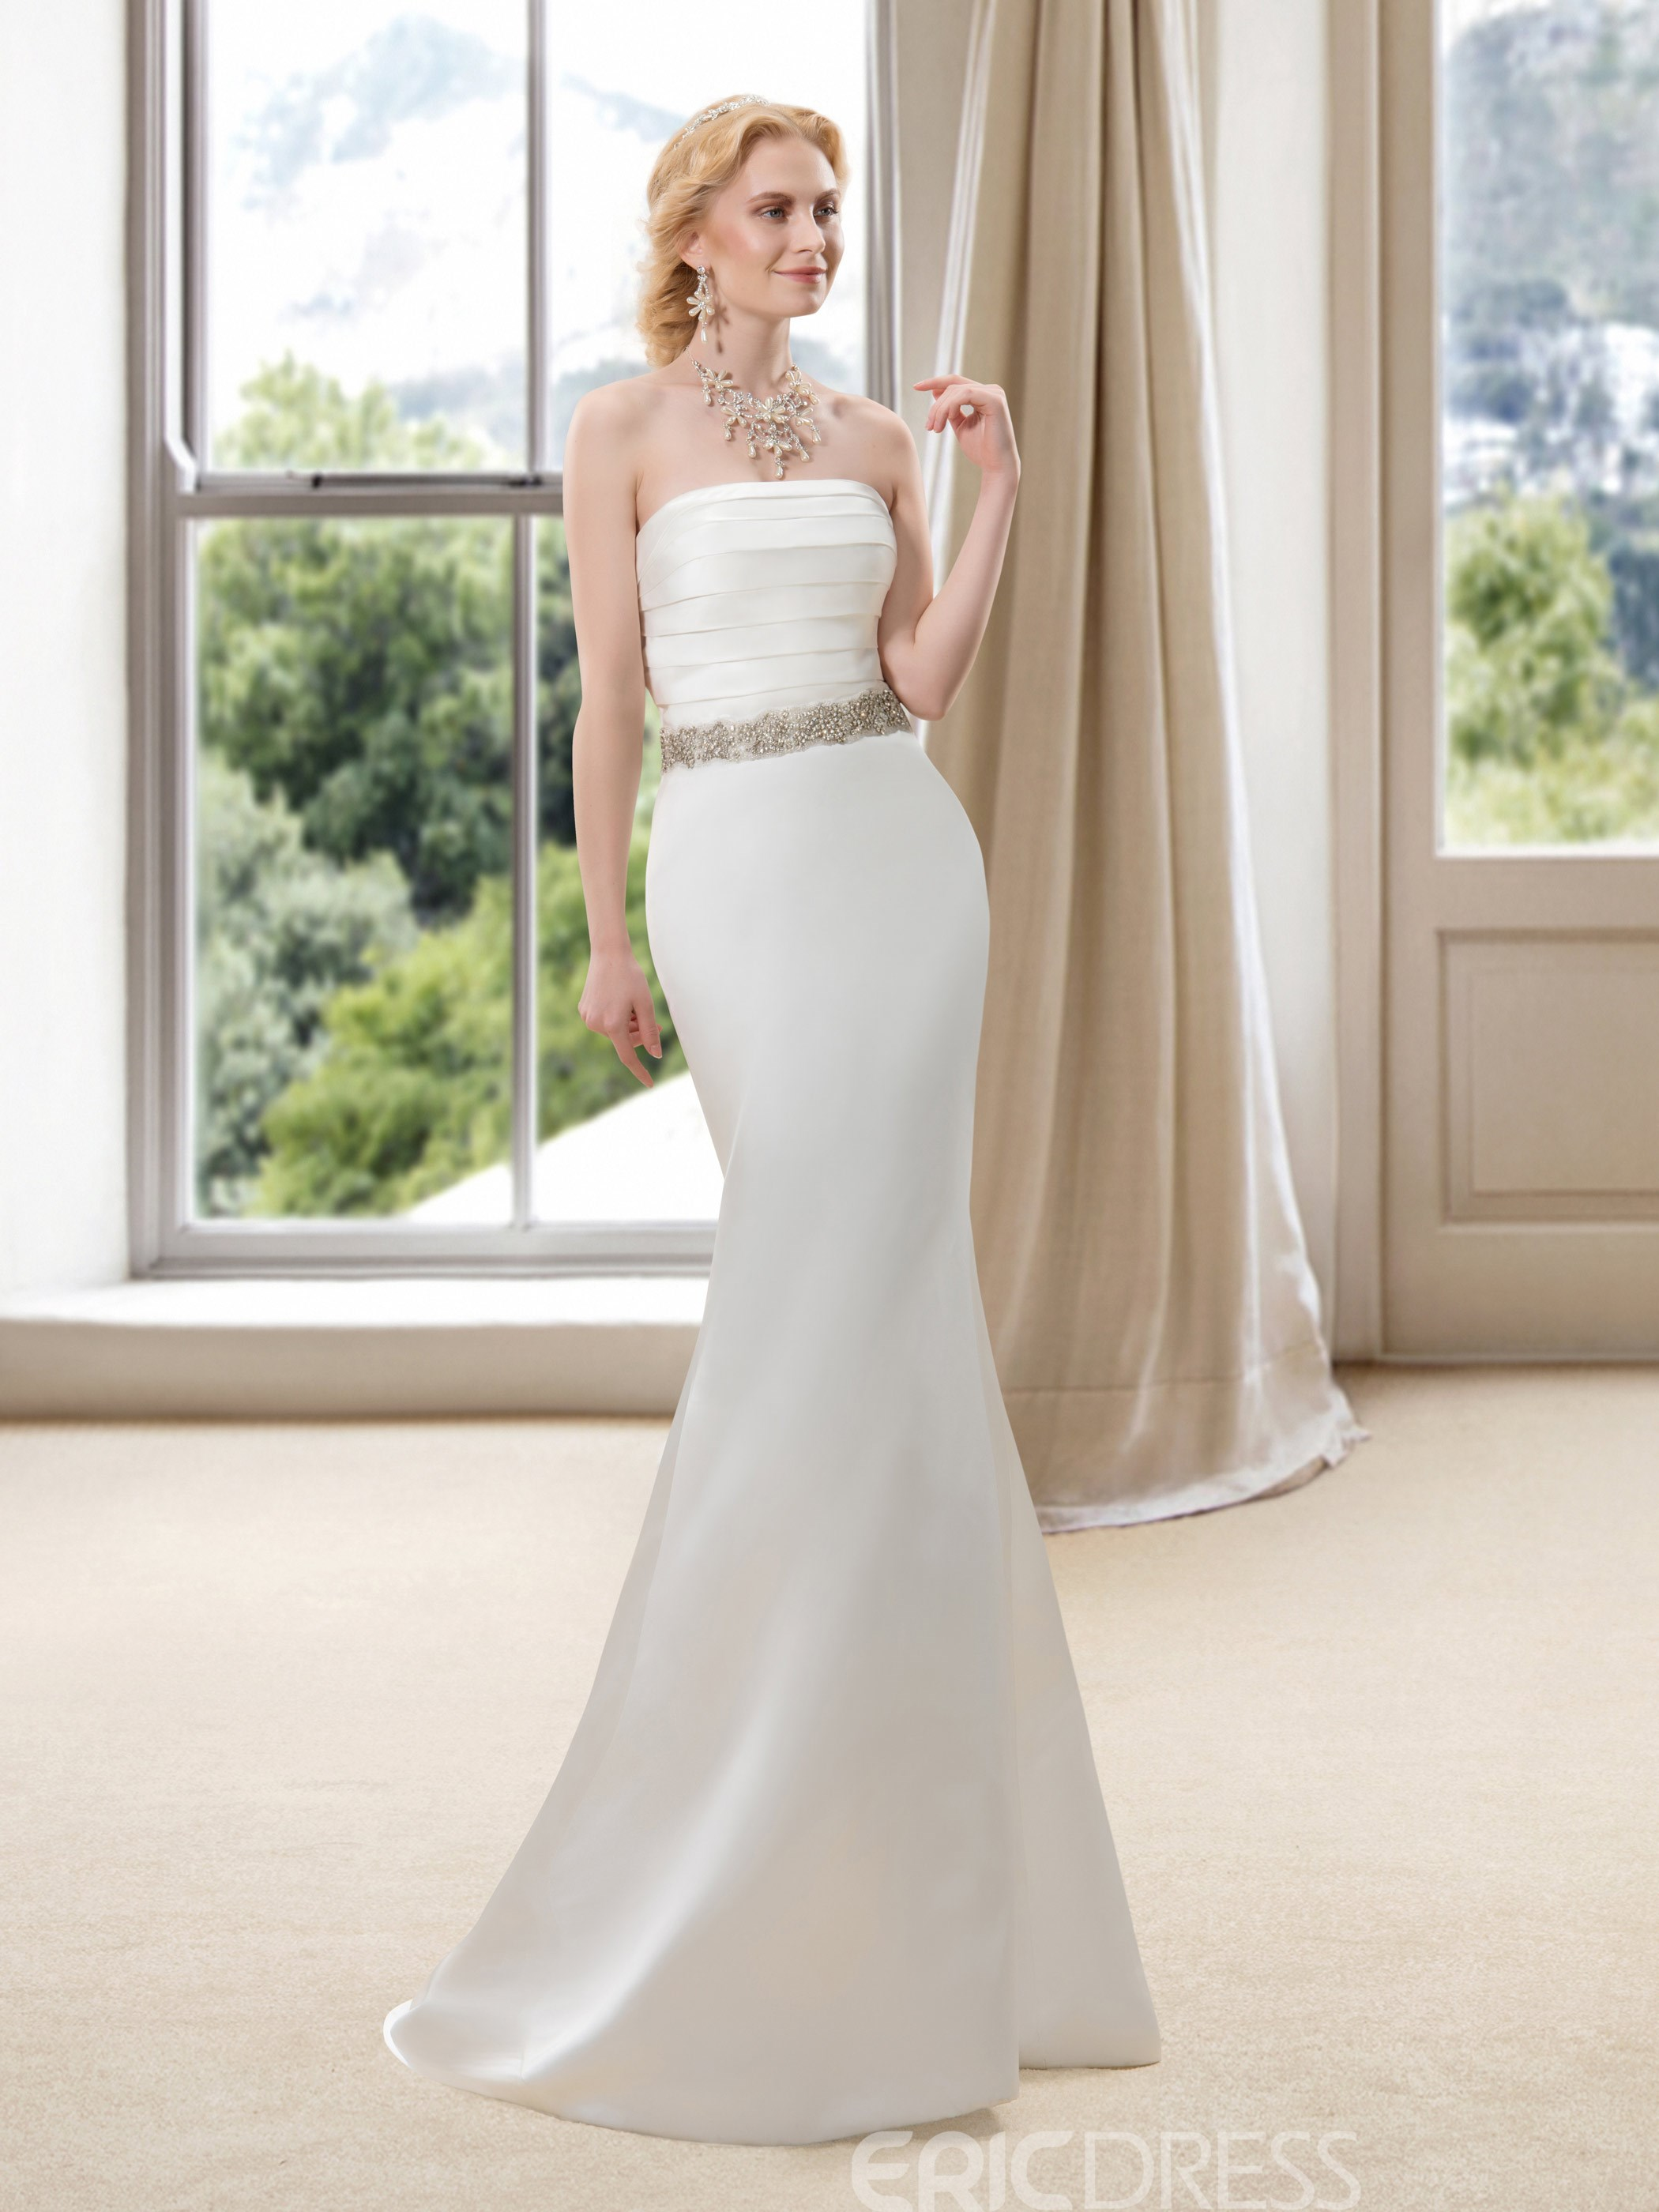 Strapless Sweetheart Floor Length A-Line Wedding Dress